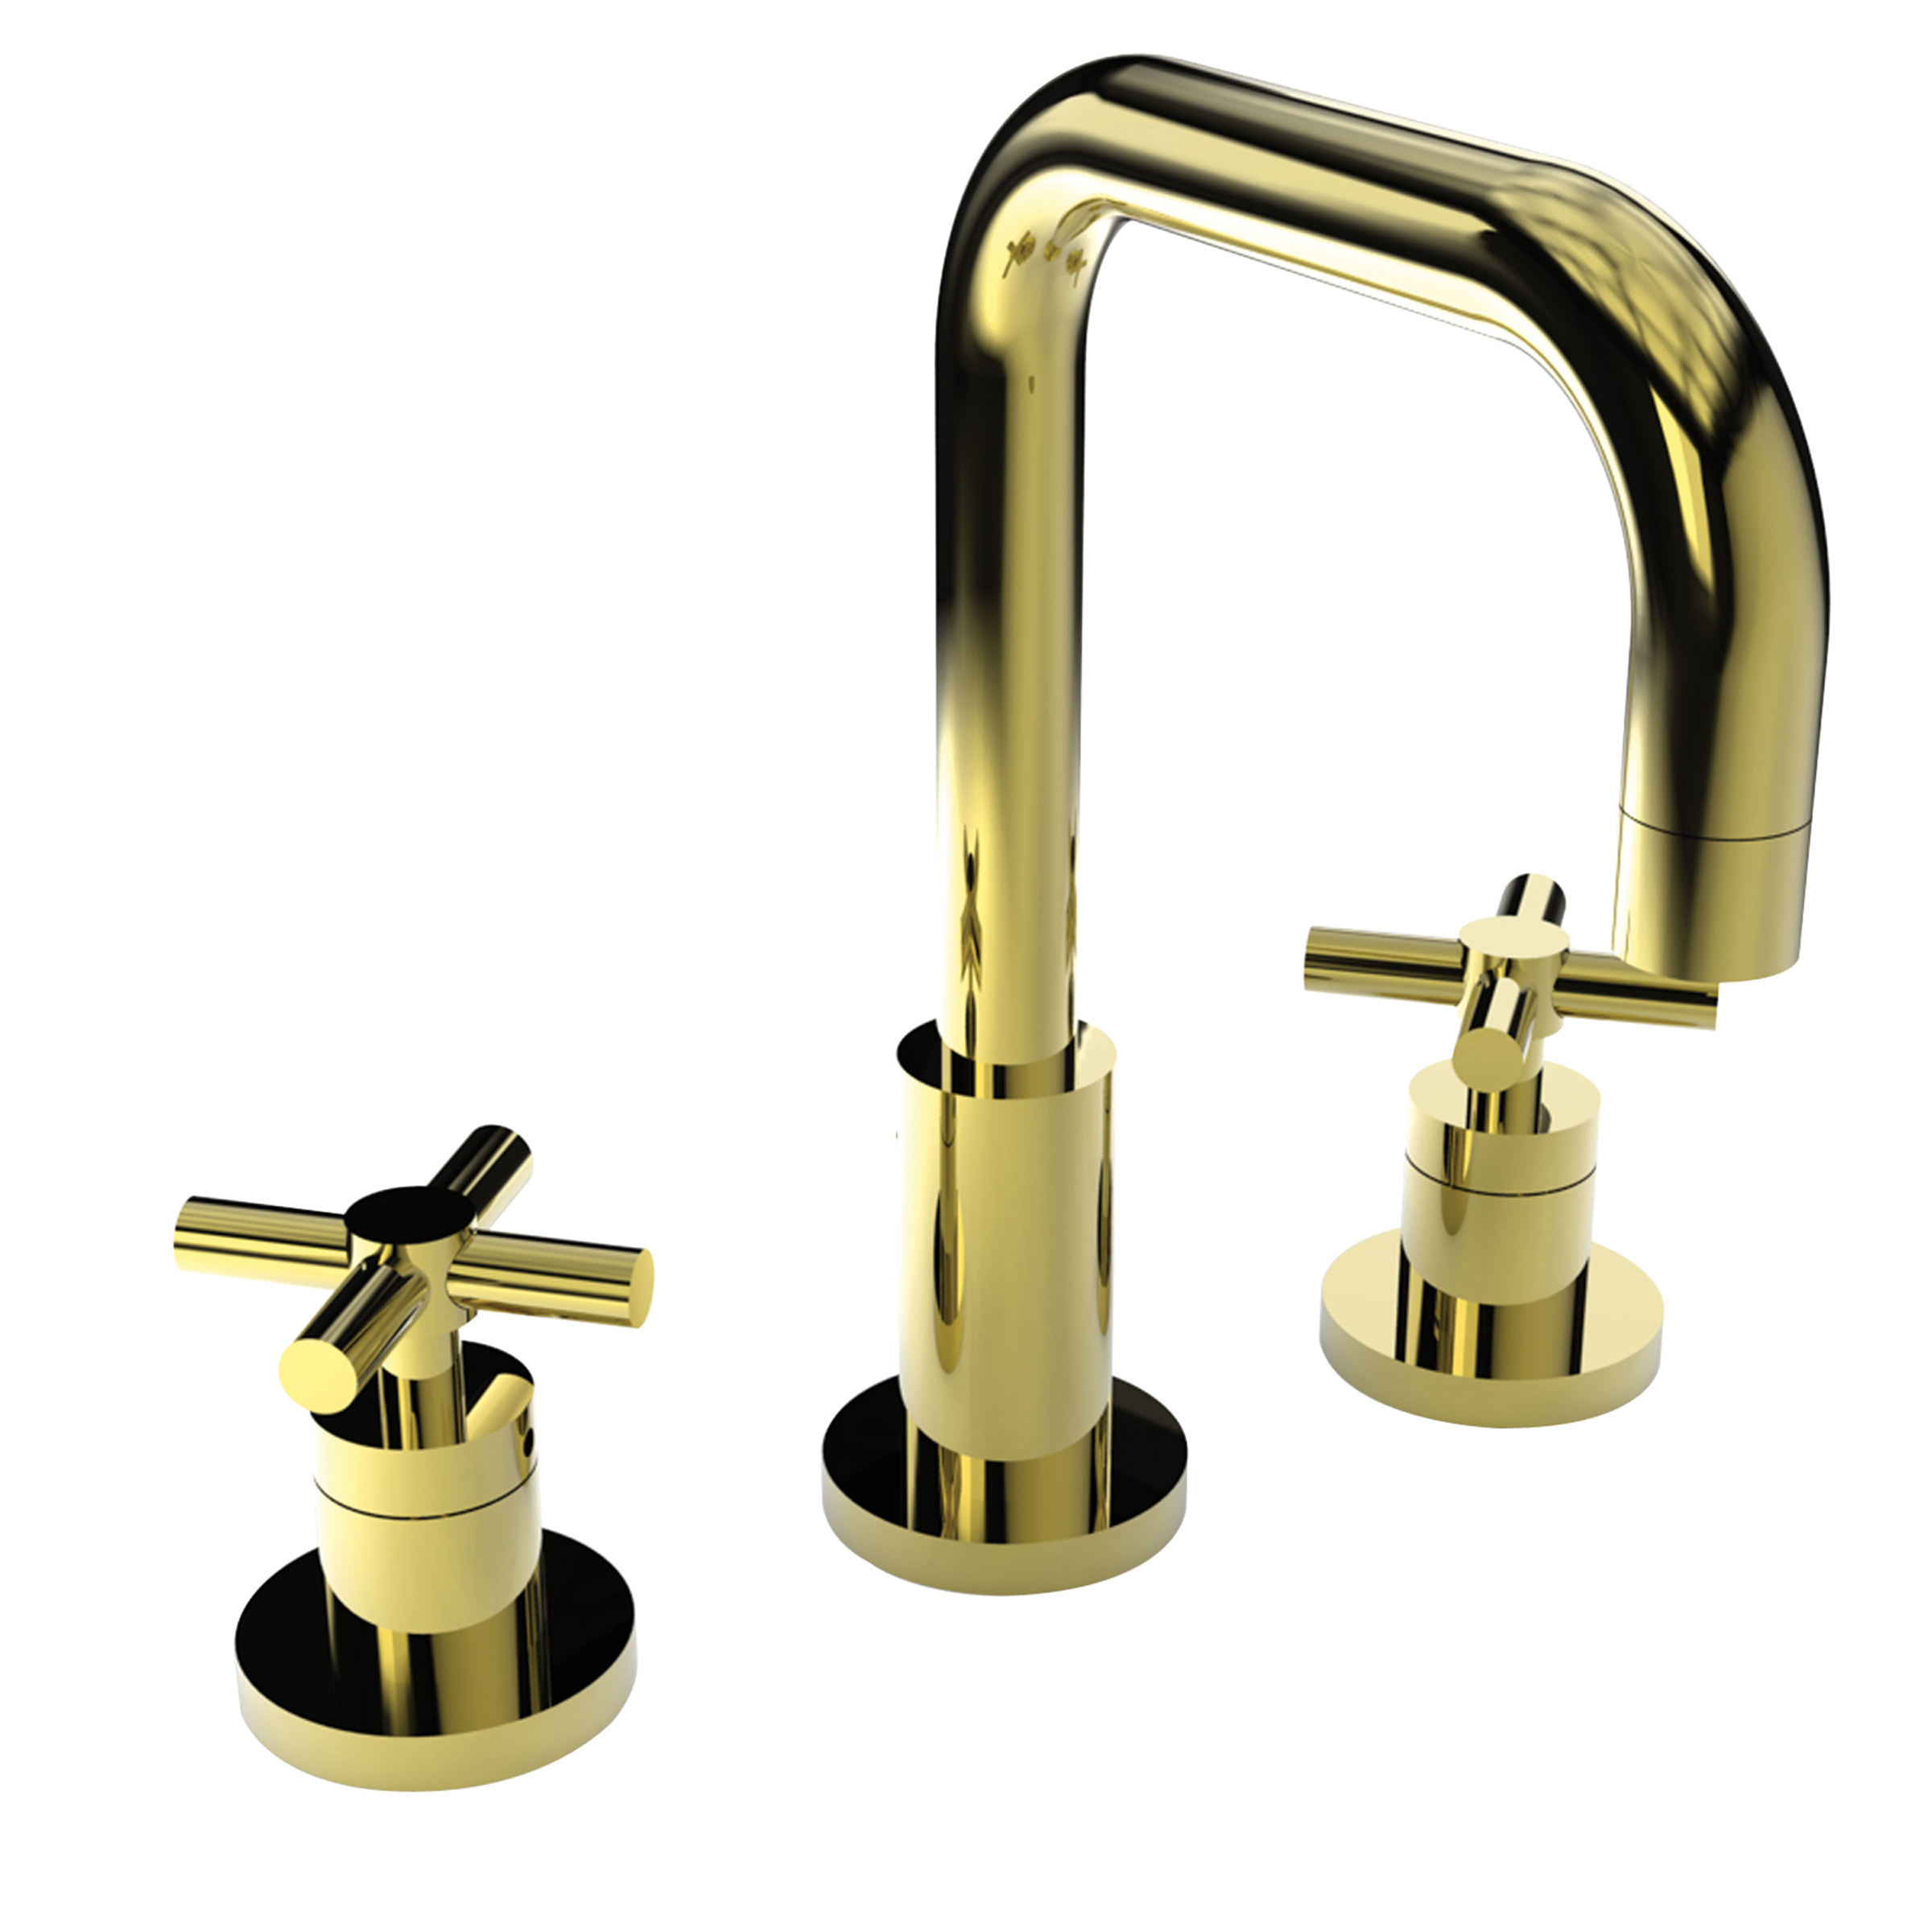 Newport Brass 1400 Widespread Faucet Newport Brass Faucets